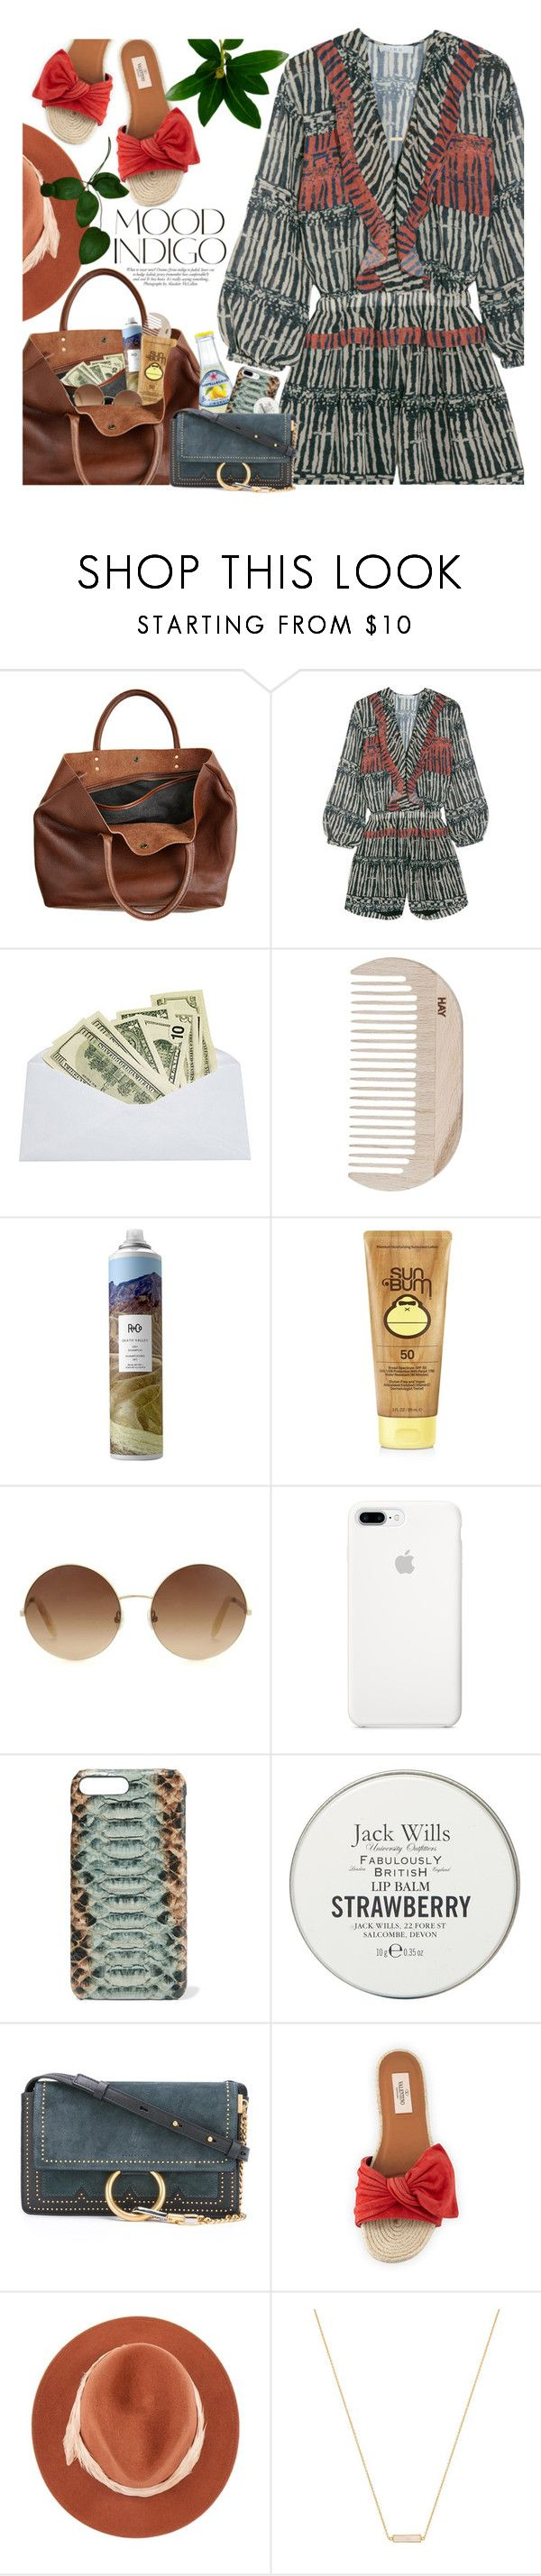 """""""Favorite Festival Trend: Rompers"""" by hollowpoint-smile ❤ liked on Polyvore featuring Monserat De Lucca, IRO, HAY, R+Co, Forever 21, Victoria Beckham, The Case Factory, Jack Wills, Chloé and Valentino"""